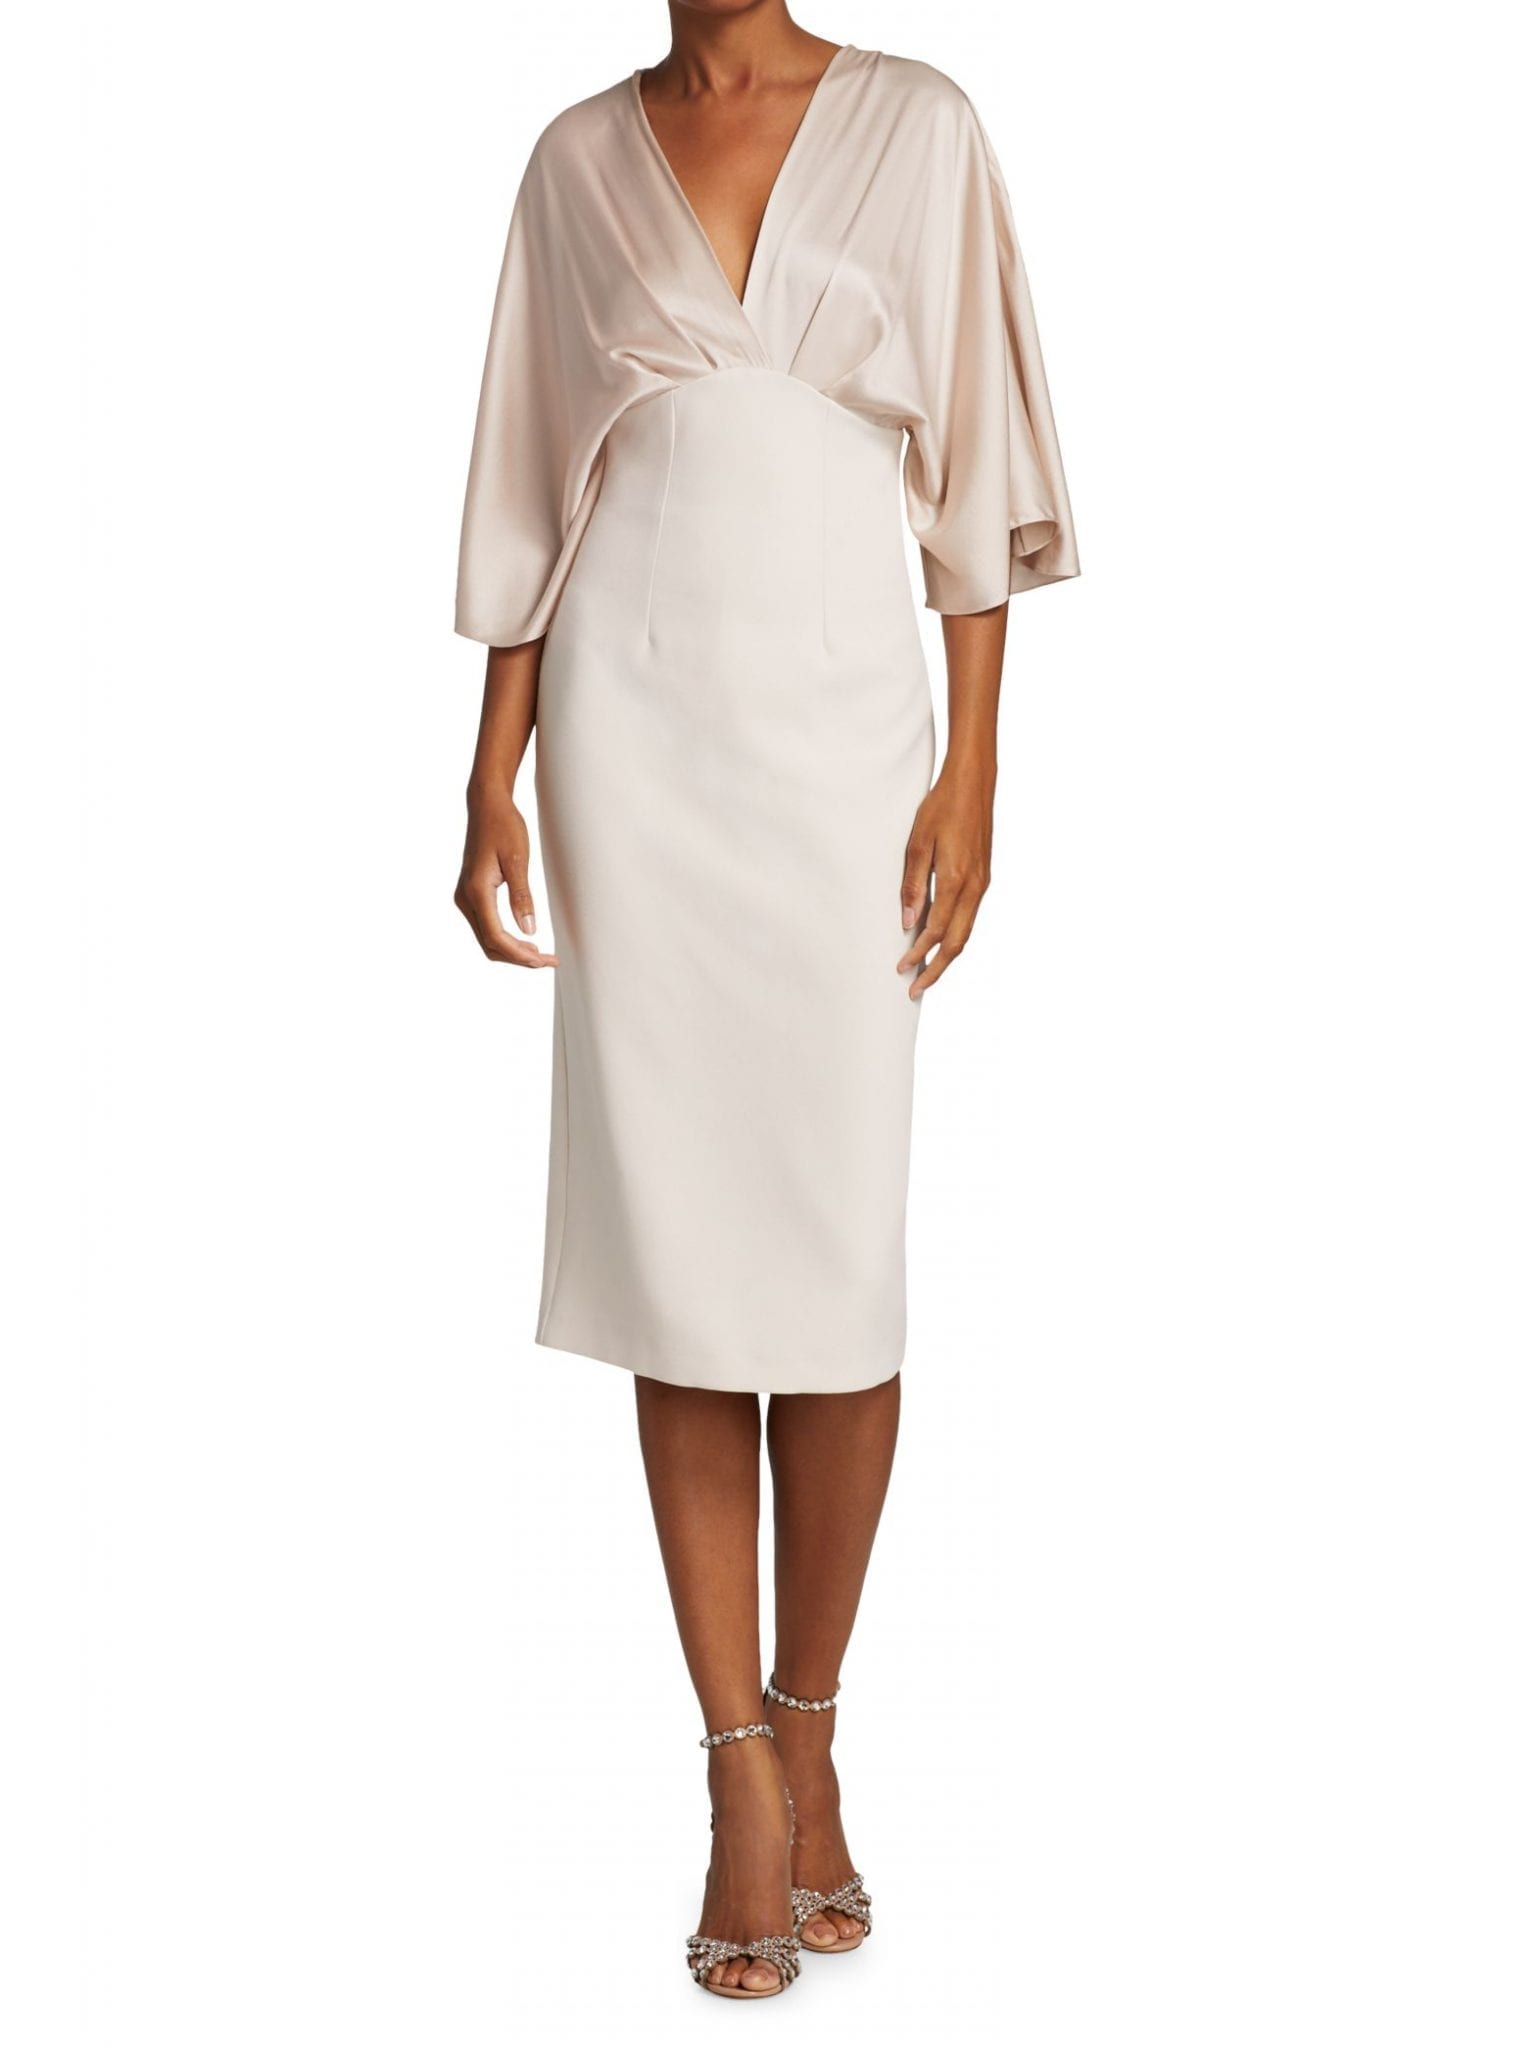 SAFIYAA Ionie Fluid Silk Crepe Cocktail Dress